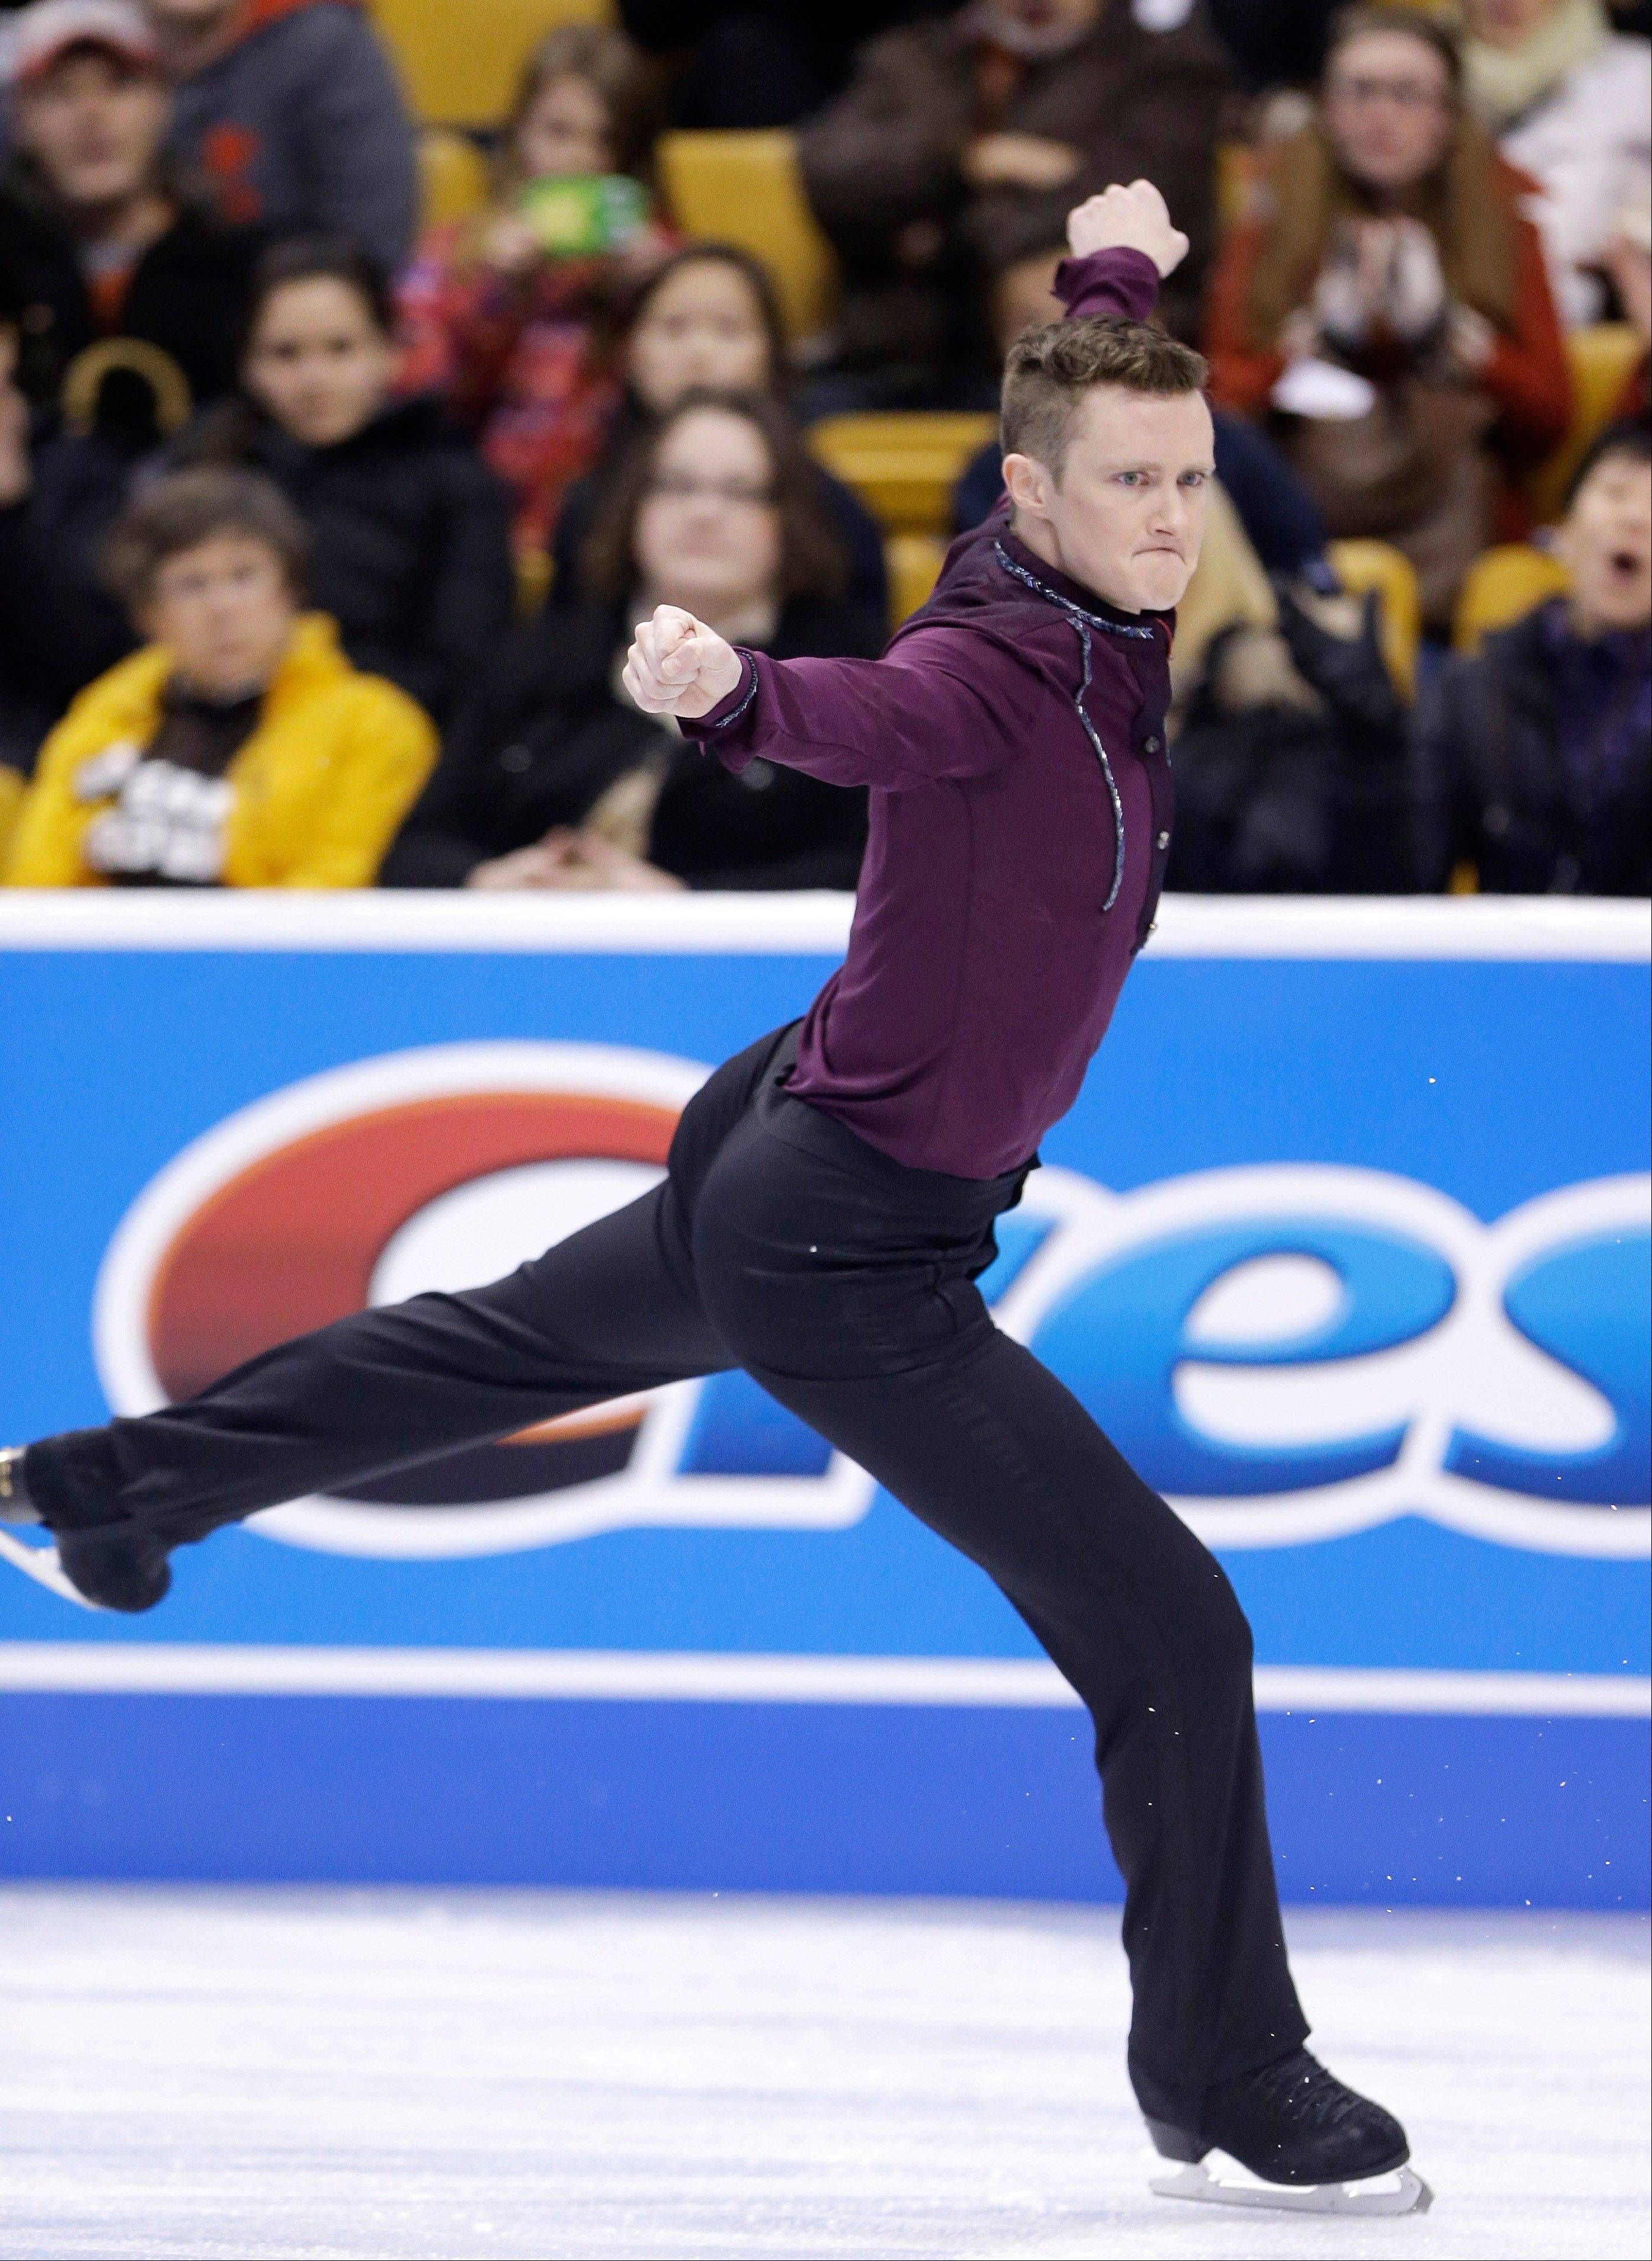 Jeremy Abbott skates during the men's short program Friday at the U.S. Figure Skating Championships in Boston.